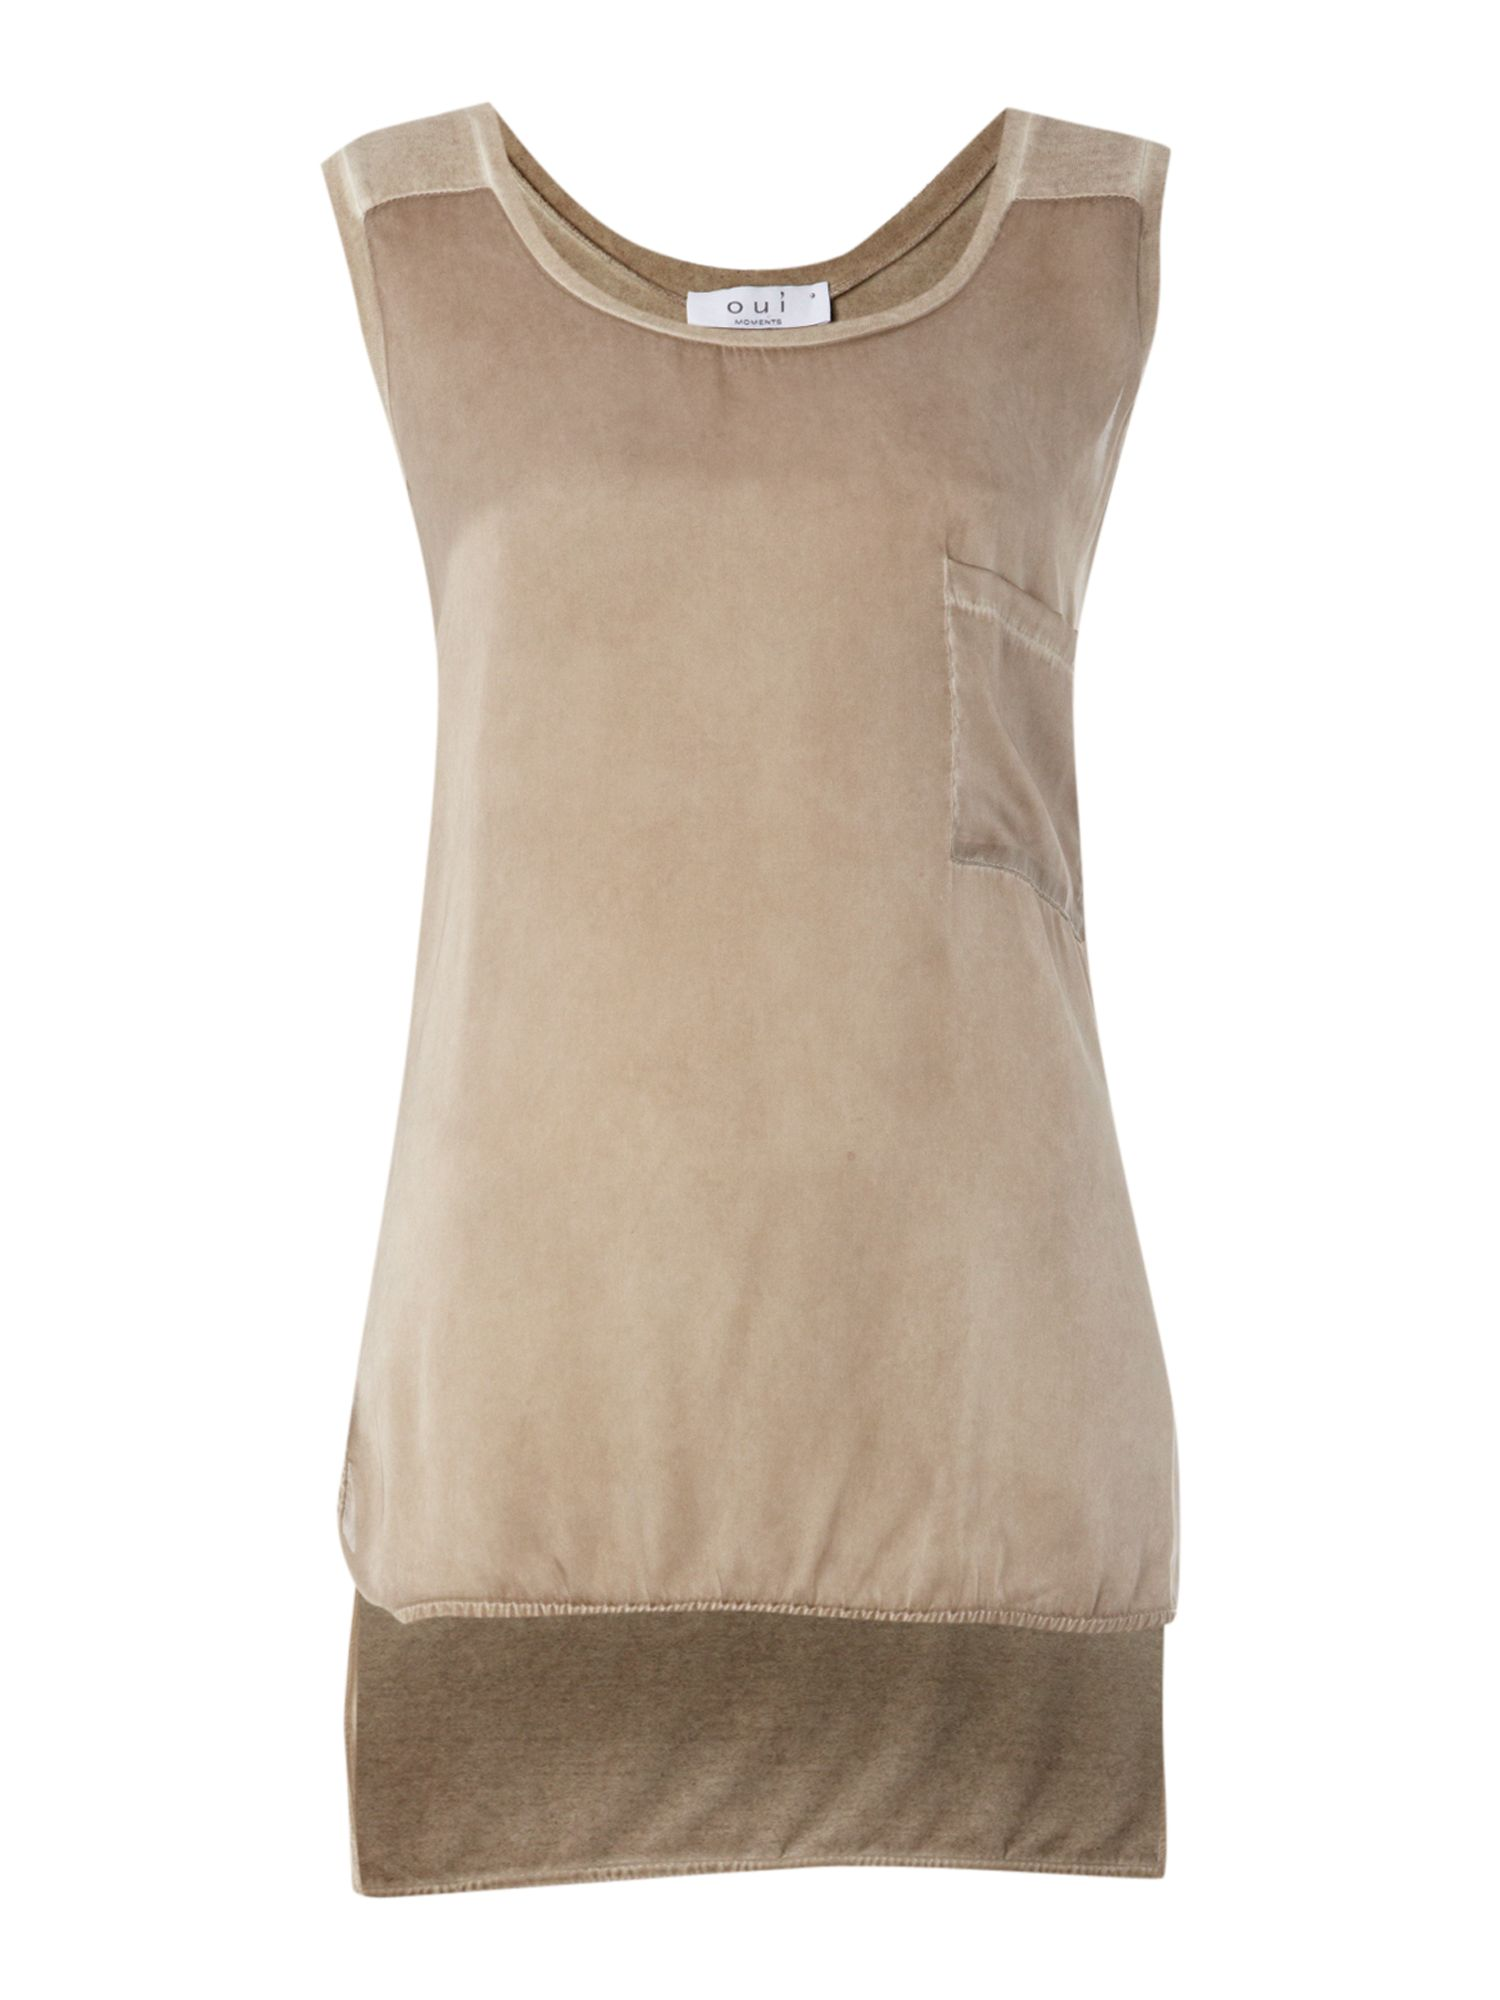 Sleeveless tank top with pocket